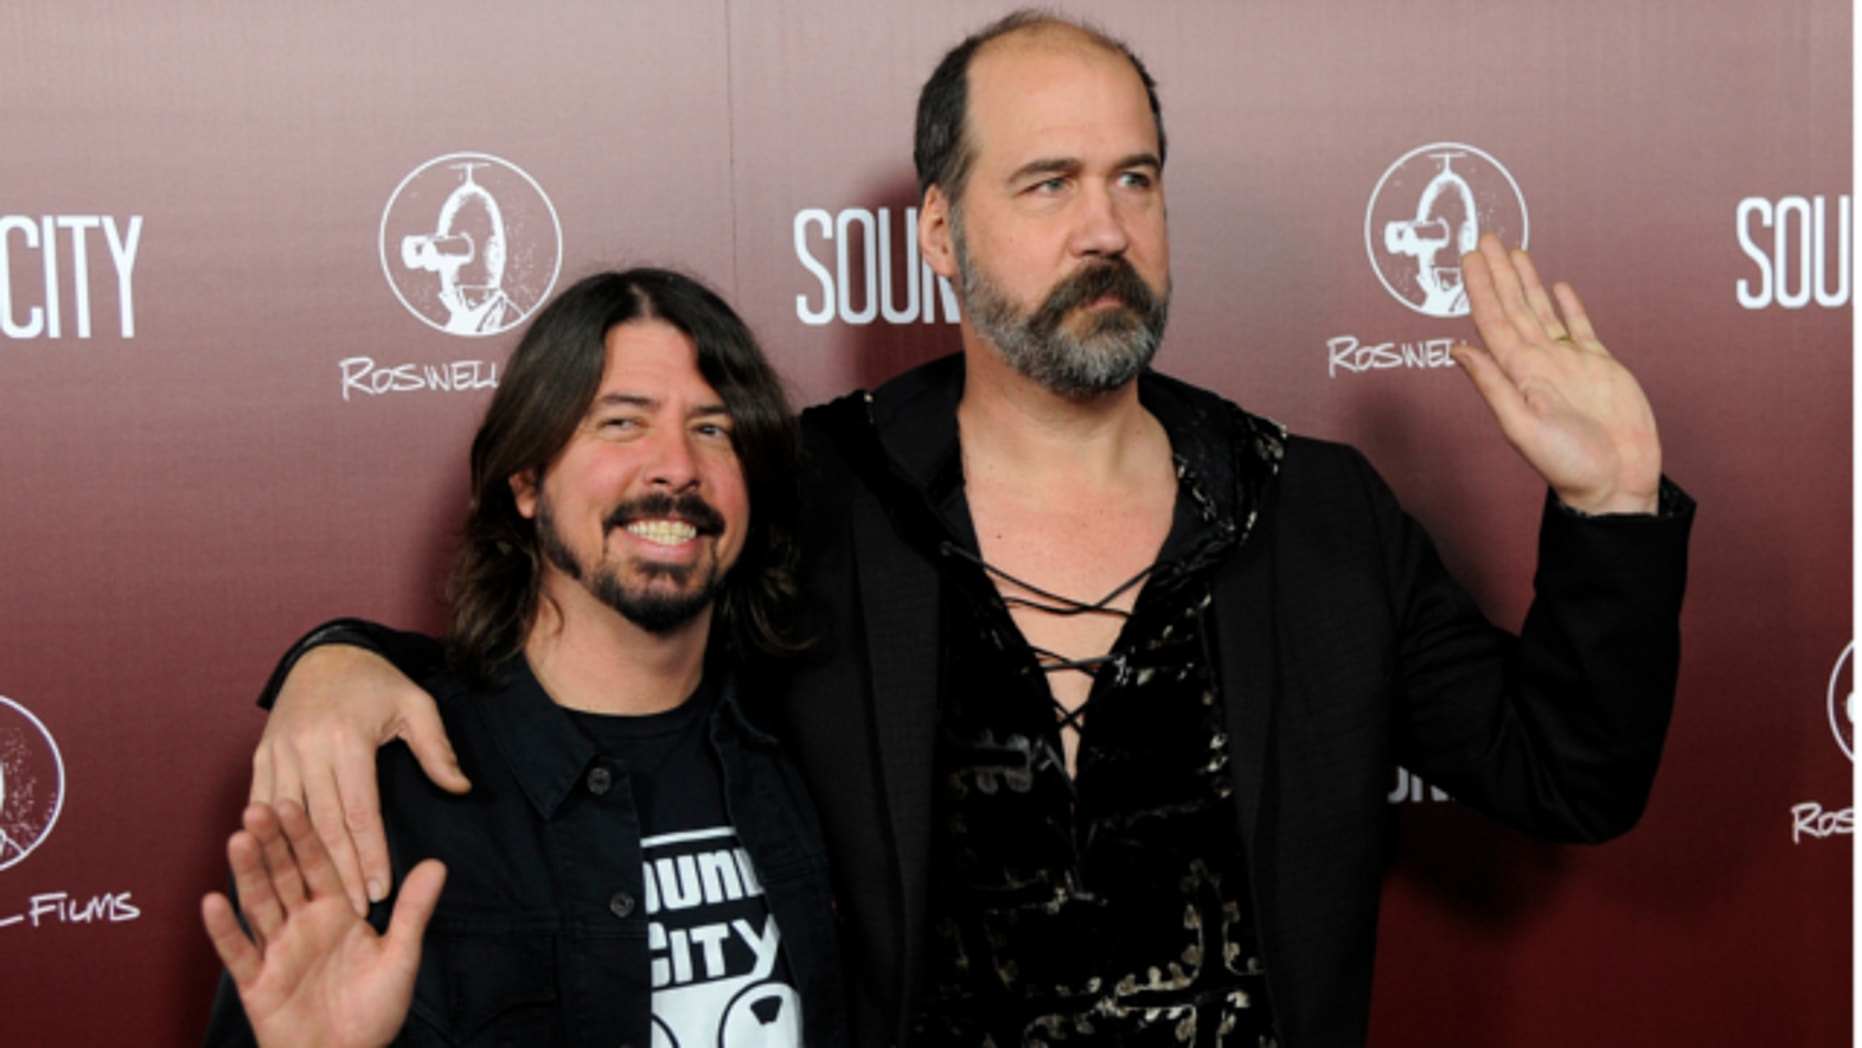 """Jan. 31, 2013: Dave Grohl, left, poses with Nirvana bandmate Krist Novoselic at the premiere of the documentary film """"Sound City,"""" in Los Angeles."""